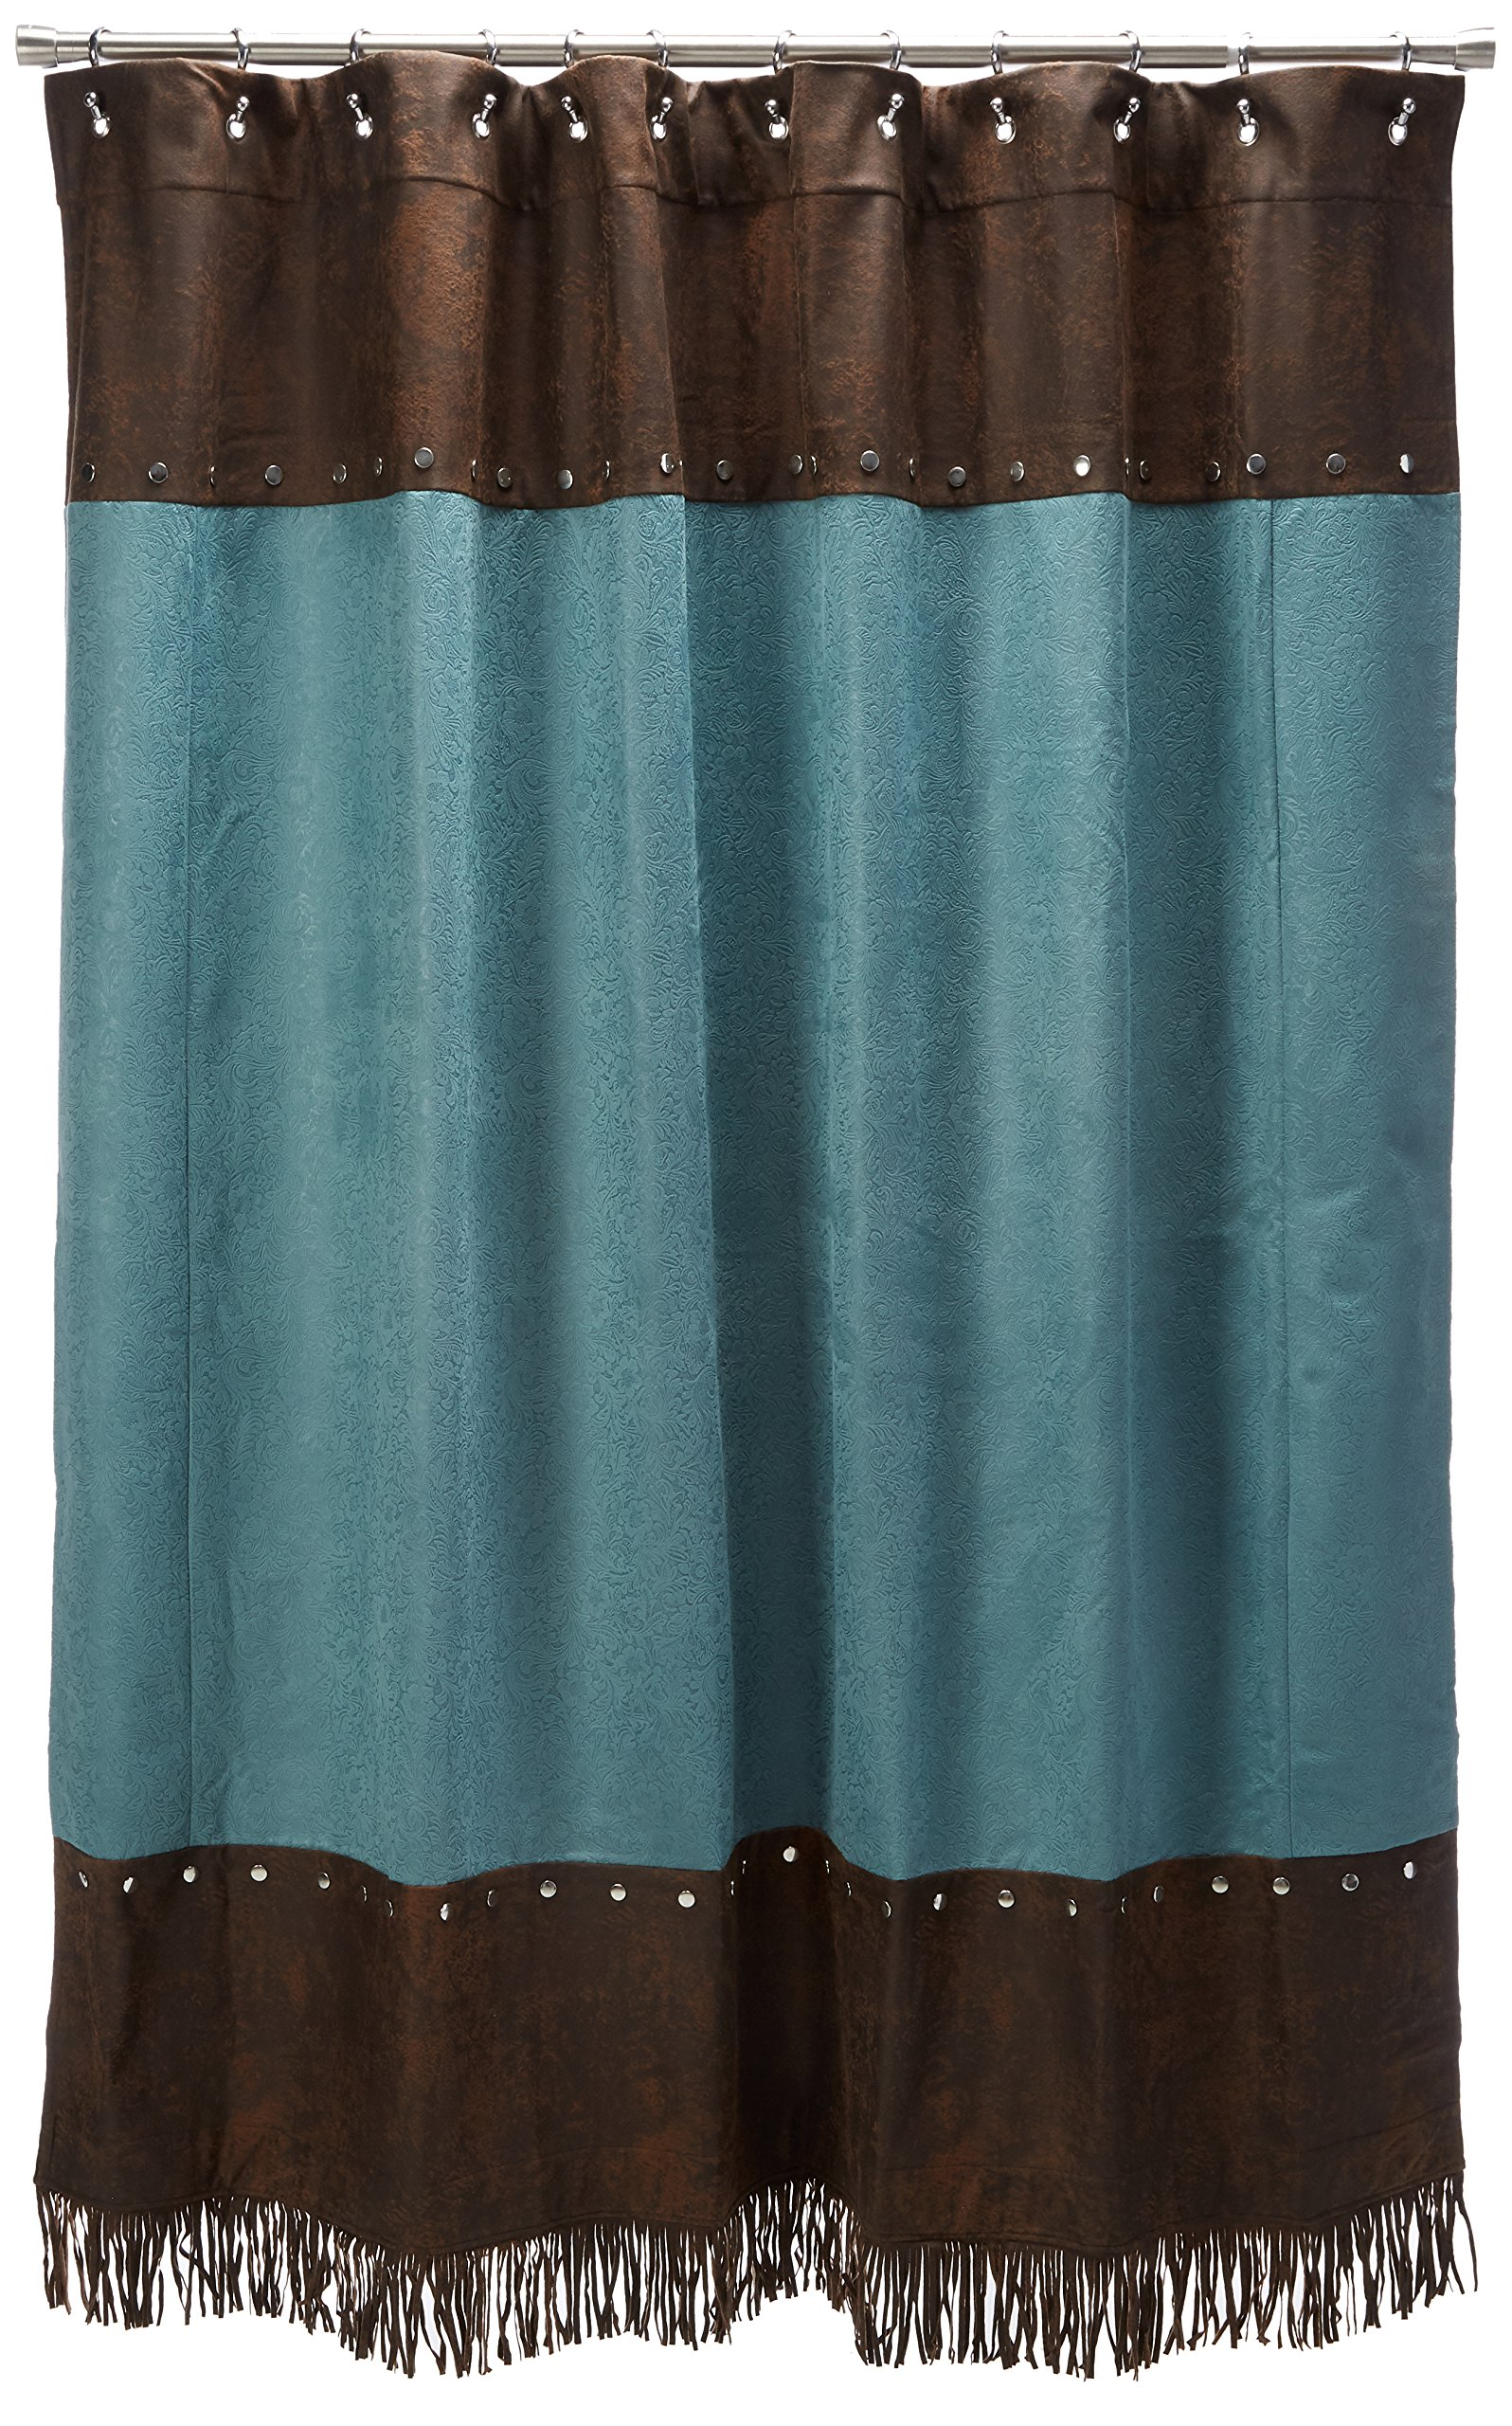 HiEnd Accents Cheyenne Western Shower Curtain, Turquoise by HiEnd Accents (Image #1)